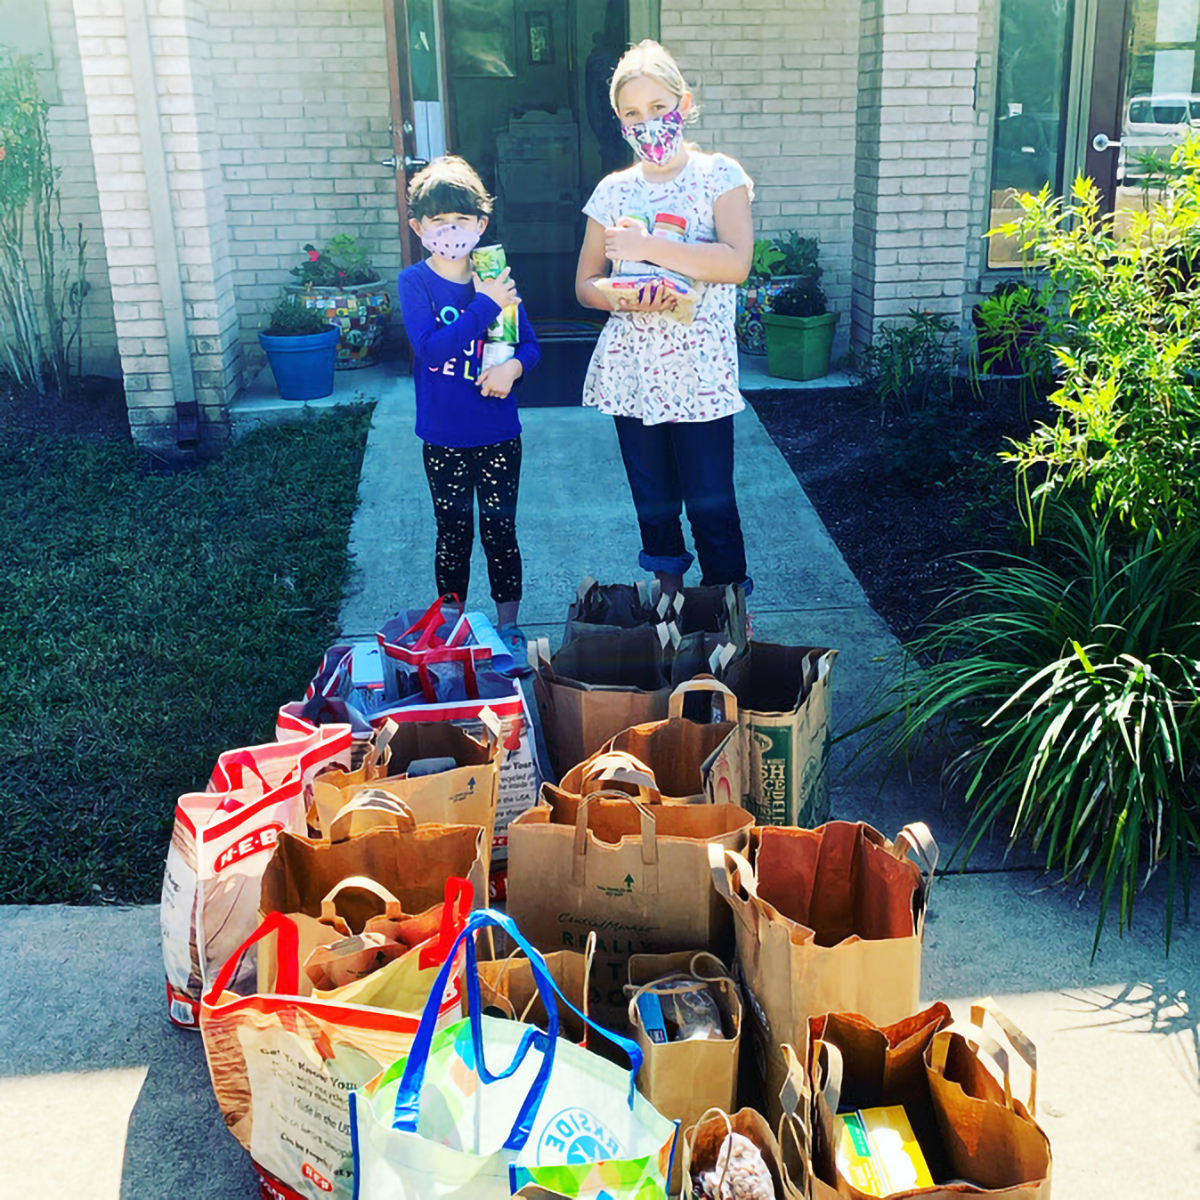 students standing with donated grocery items